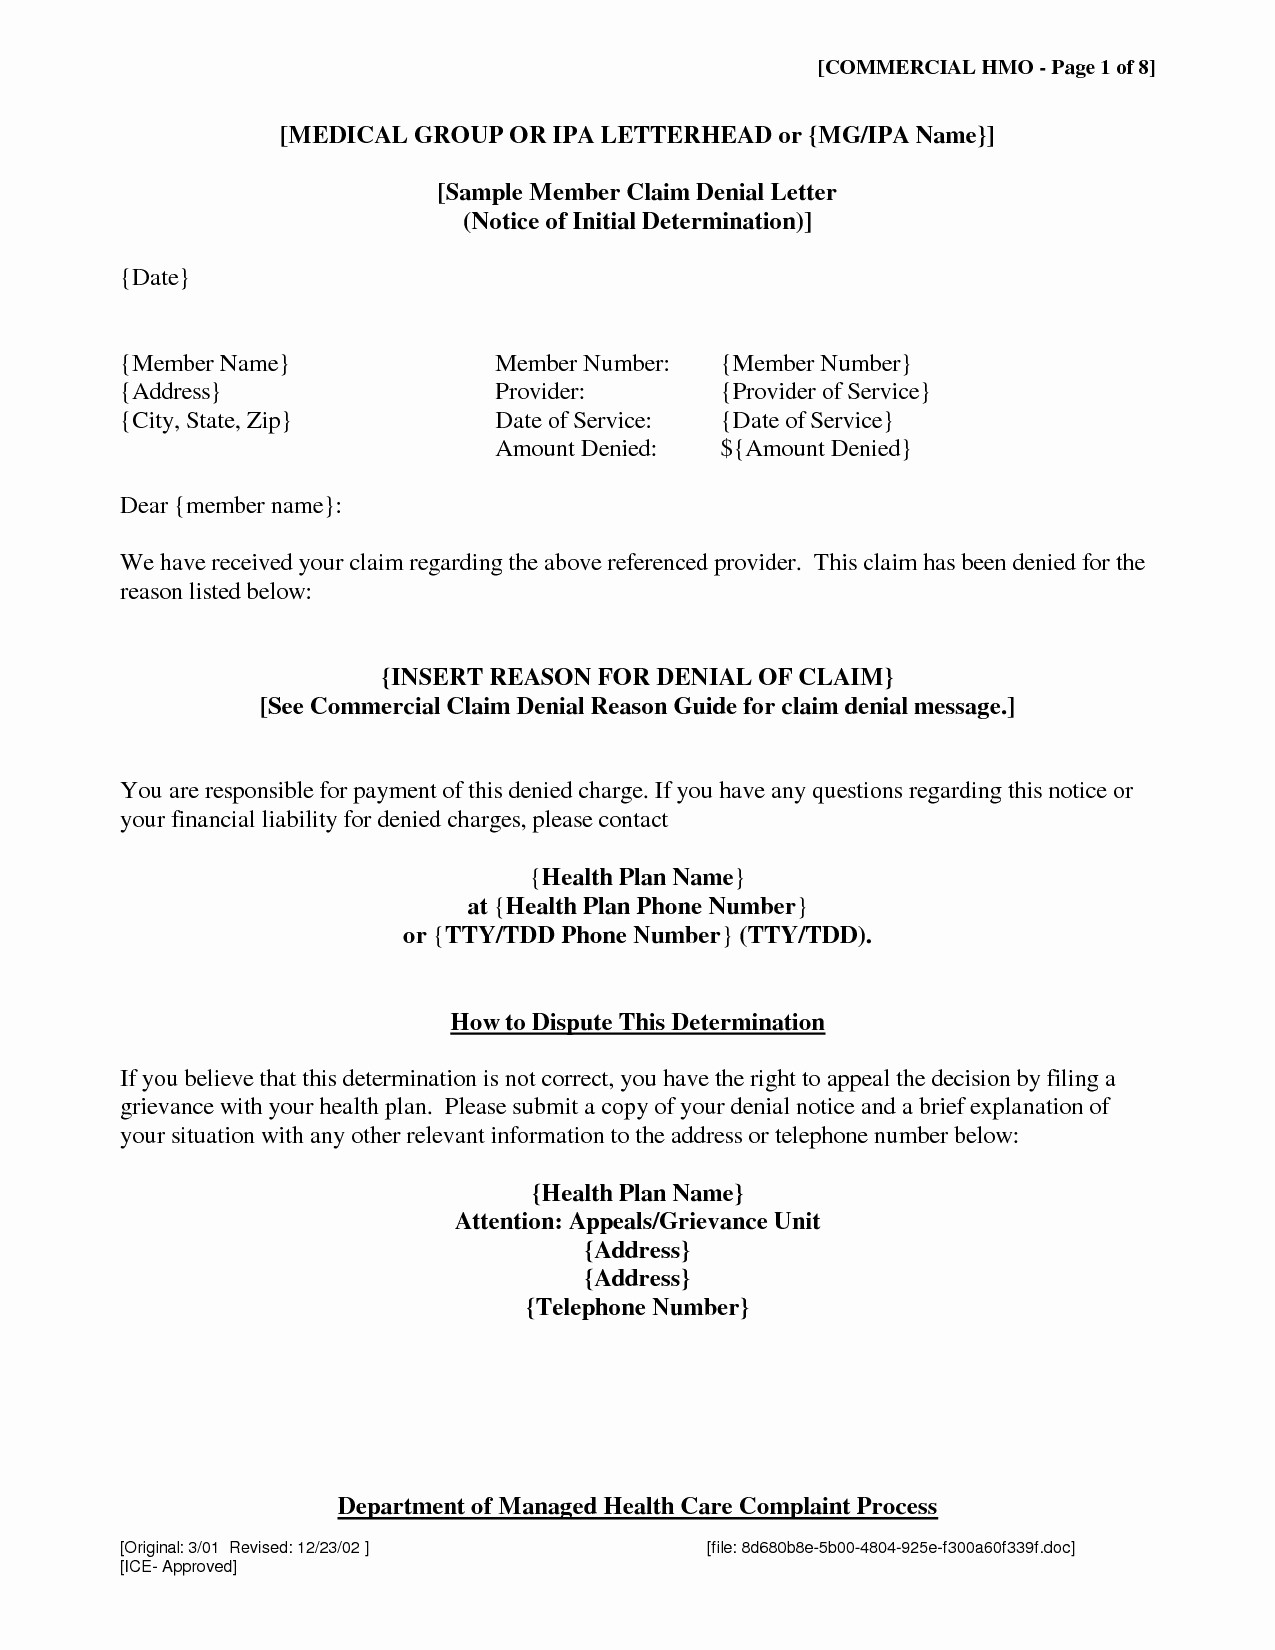 Insurance Denial Letter Template - Letter Template for Ppi Claim Copy Gallery Title Insurance Claim